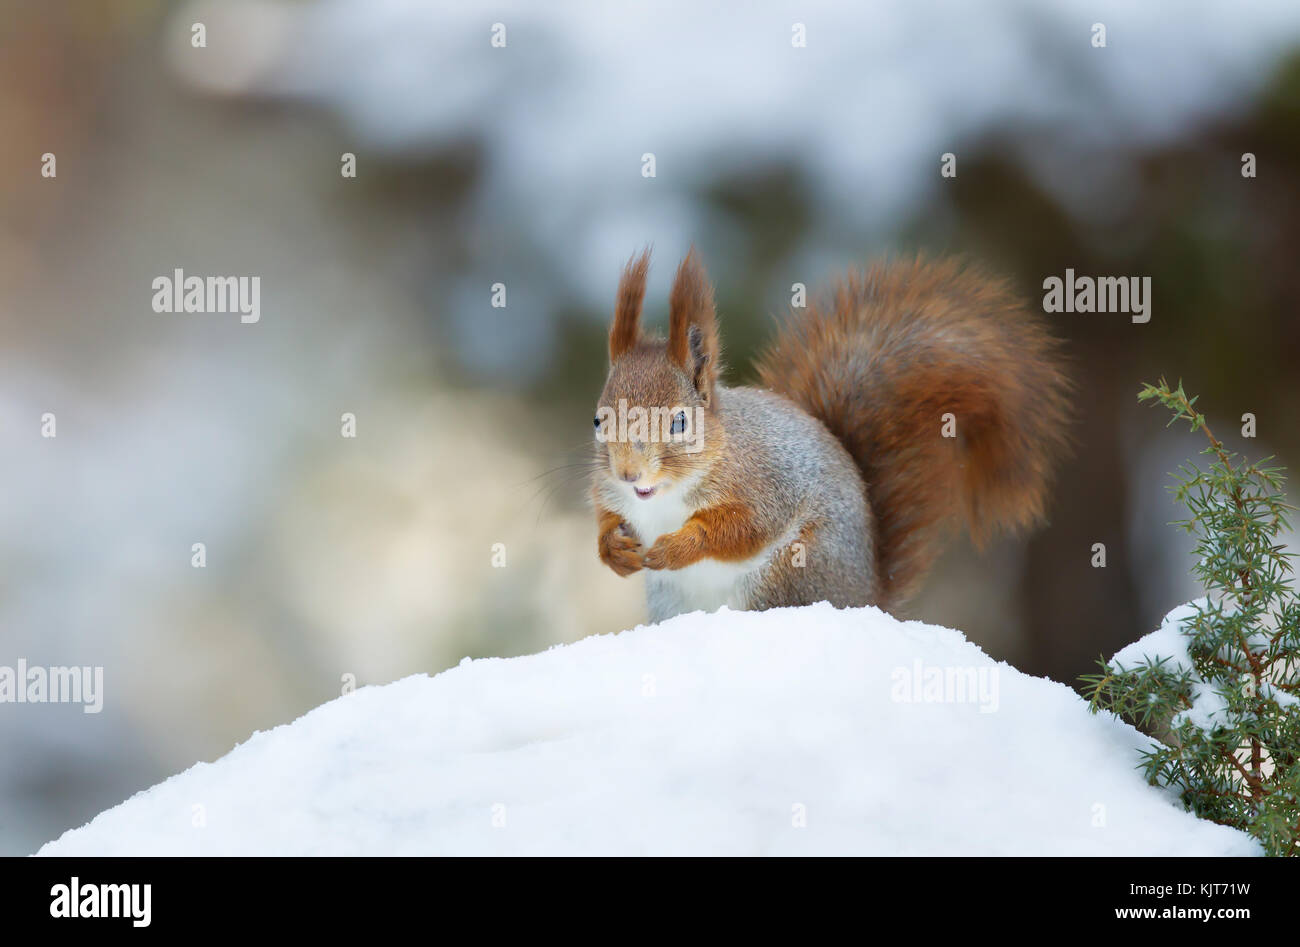 Red squirrel in winter - Stock Image